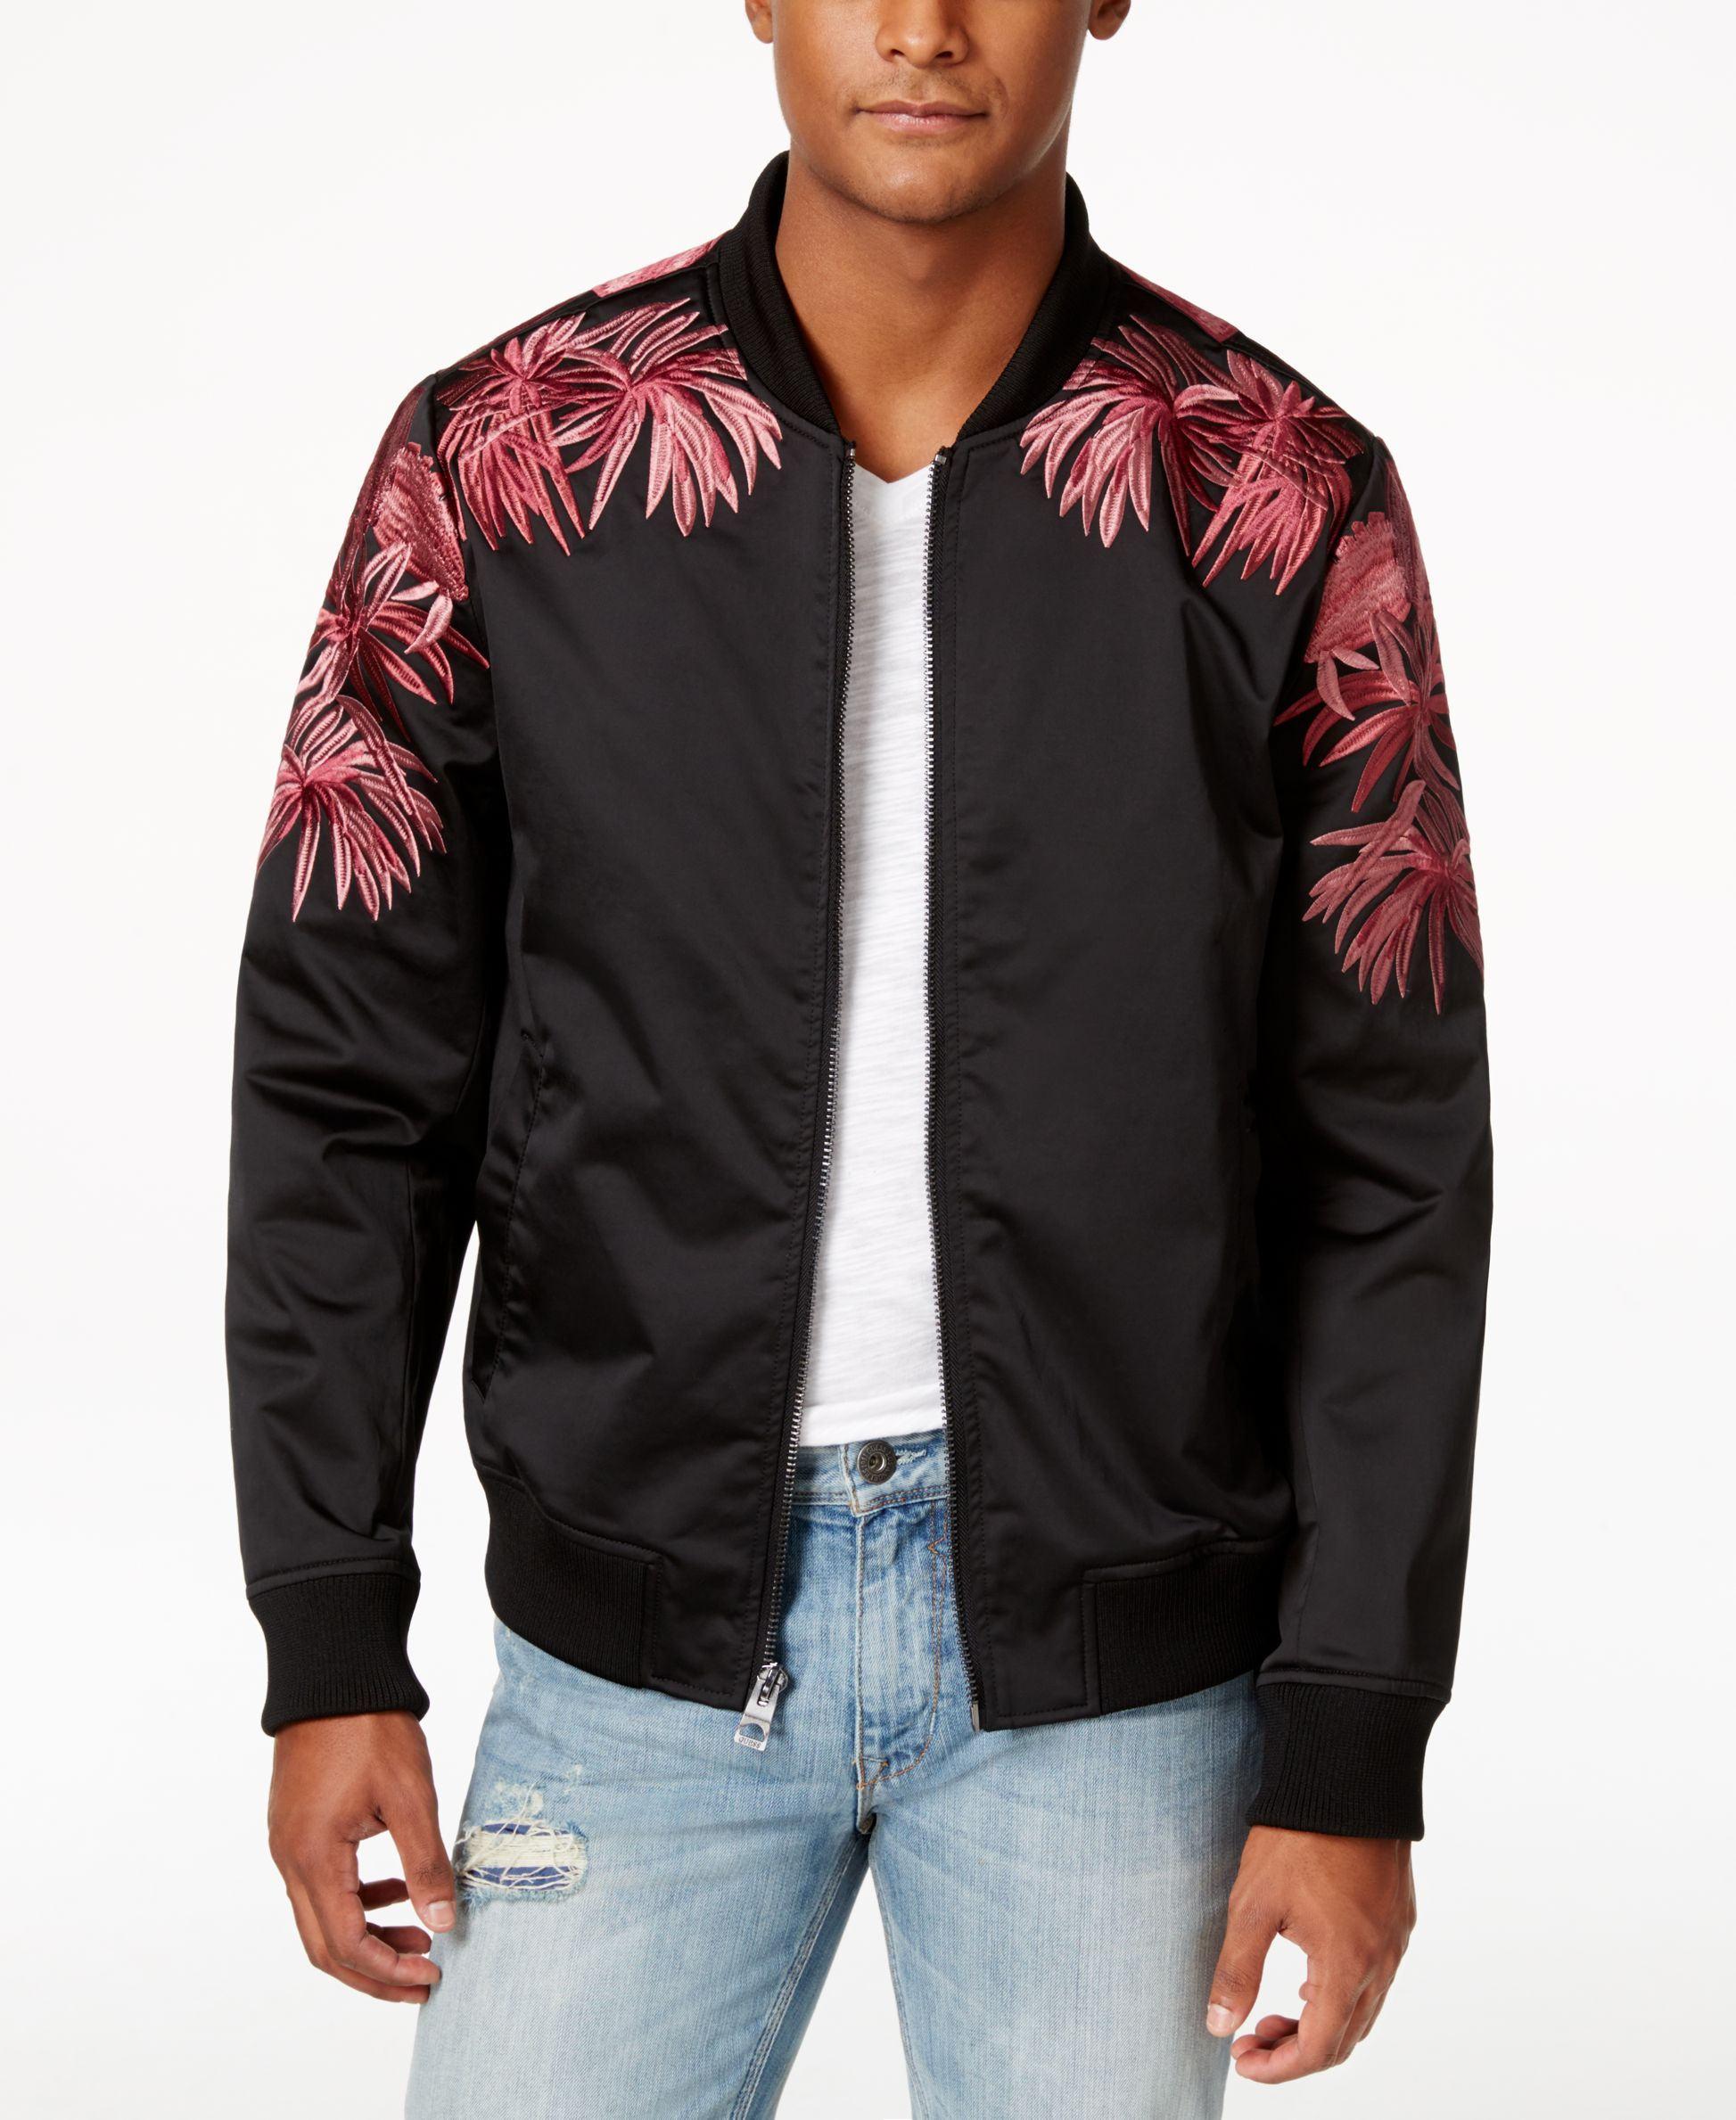 a734c0cf74cf Guess Men s Duke Floral Embroidered Bomber Jacket